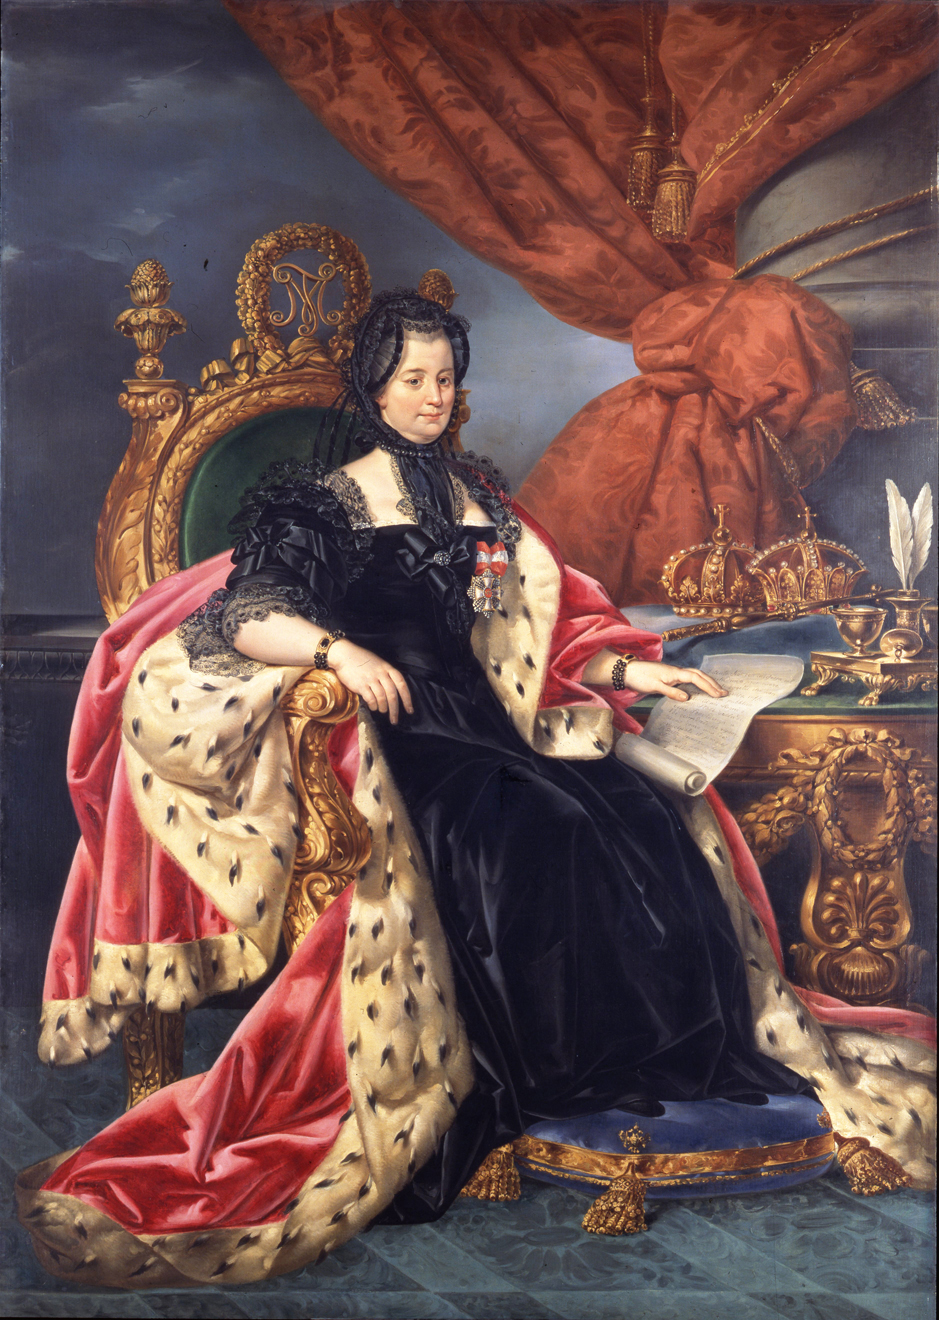 This Maria Theresa portrait by Comerio is inside the Library